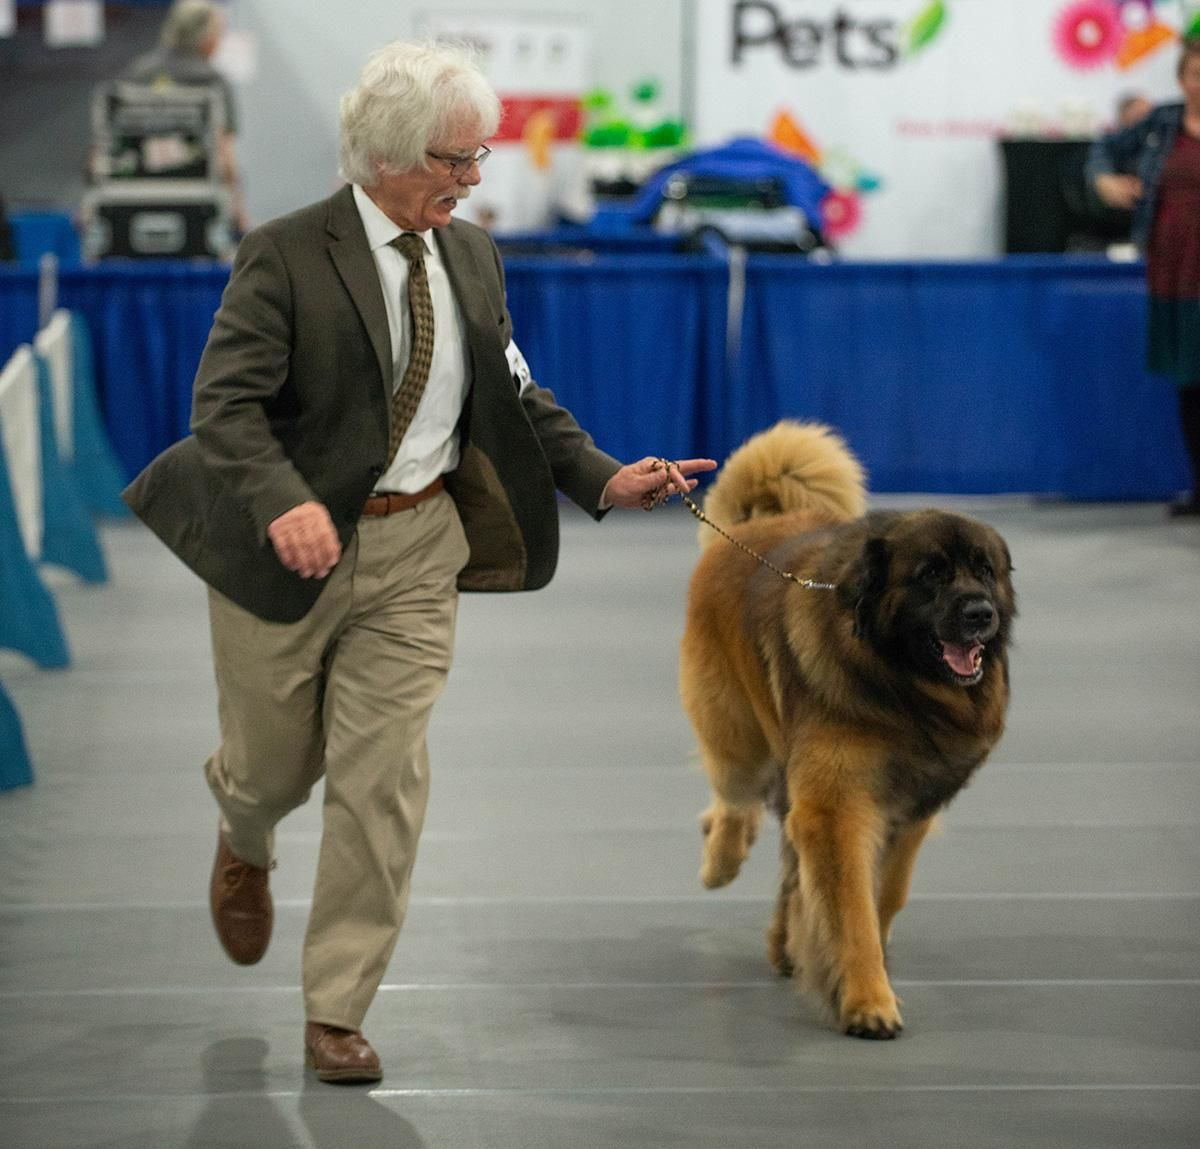 Photos: Dogs Of The 2020 Rose City Classic In Portland